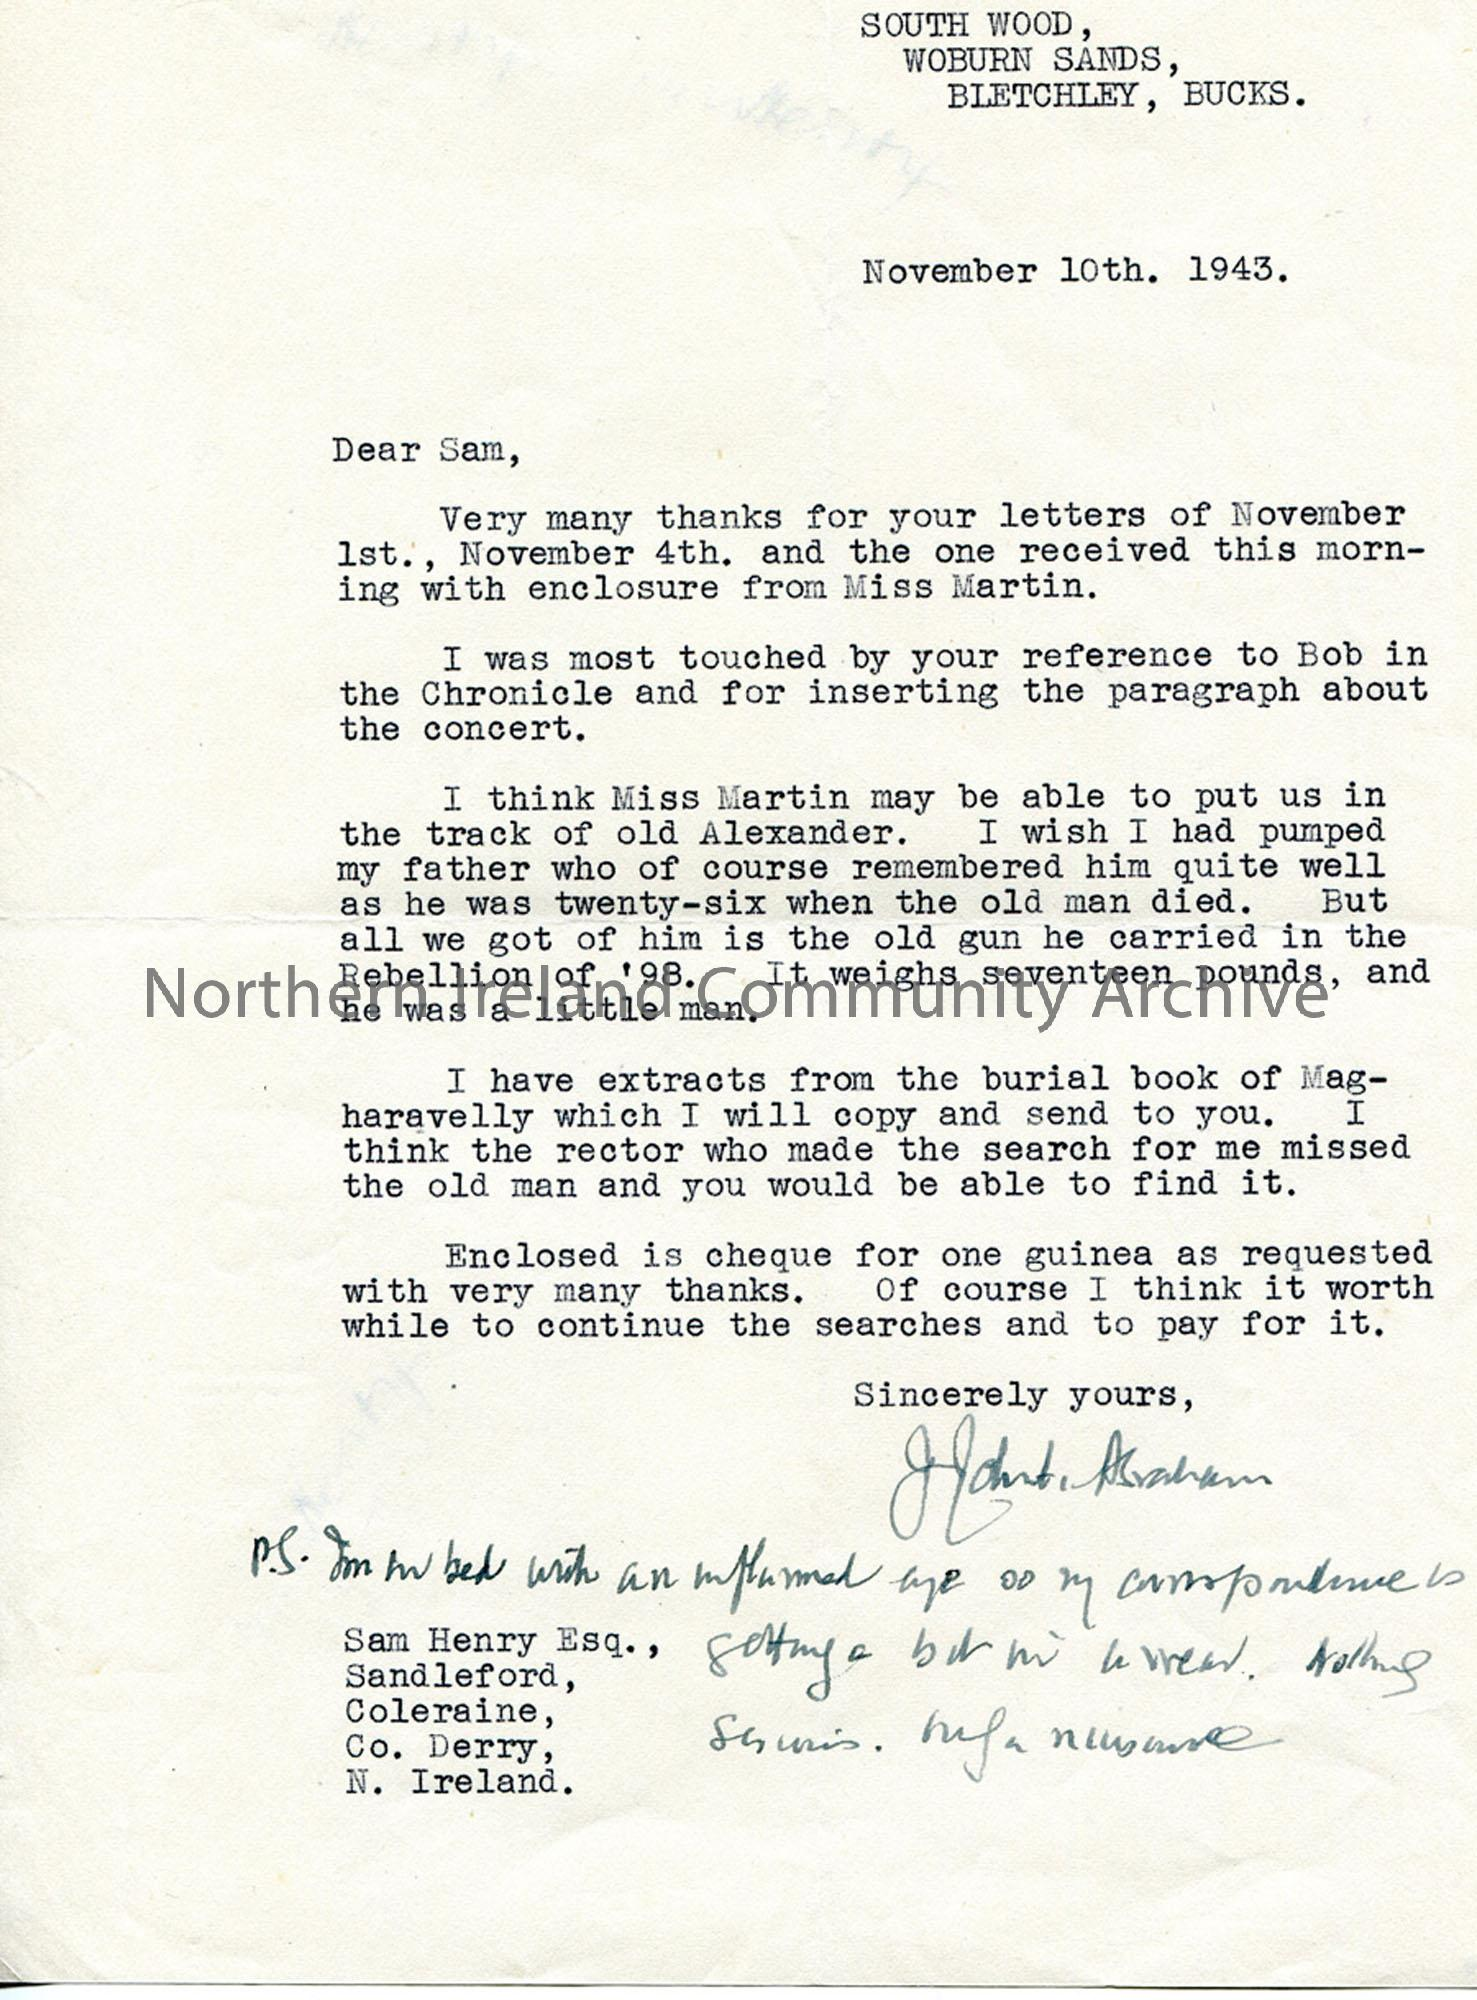 Letter from James Johnston Abraham 10.11.1943